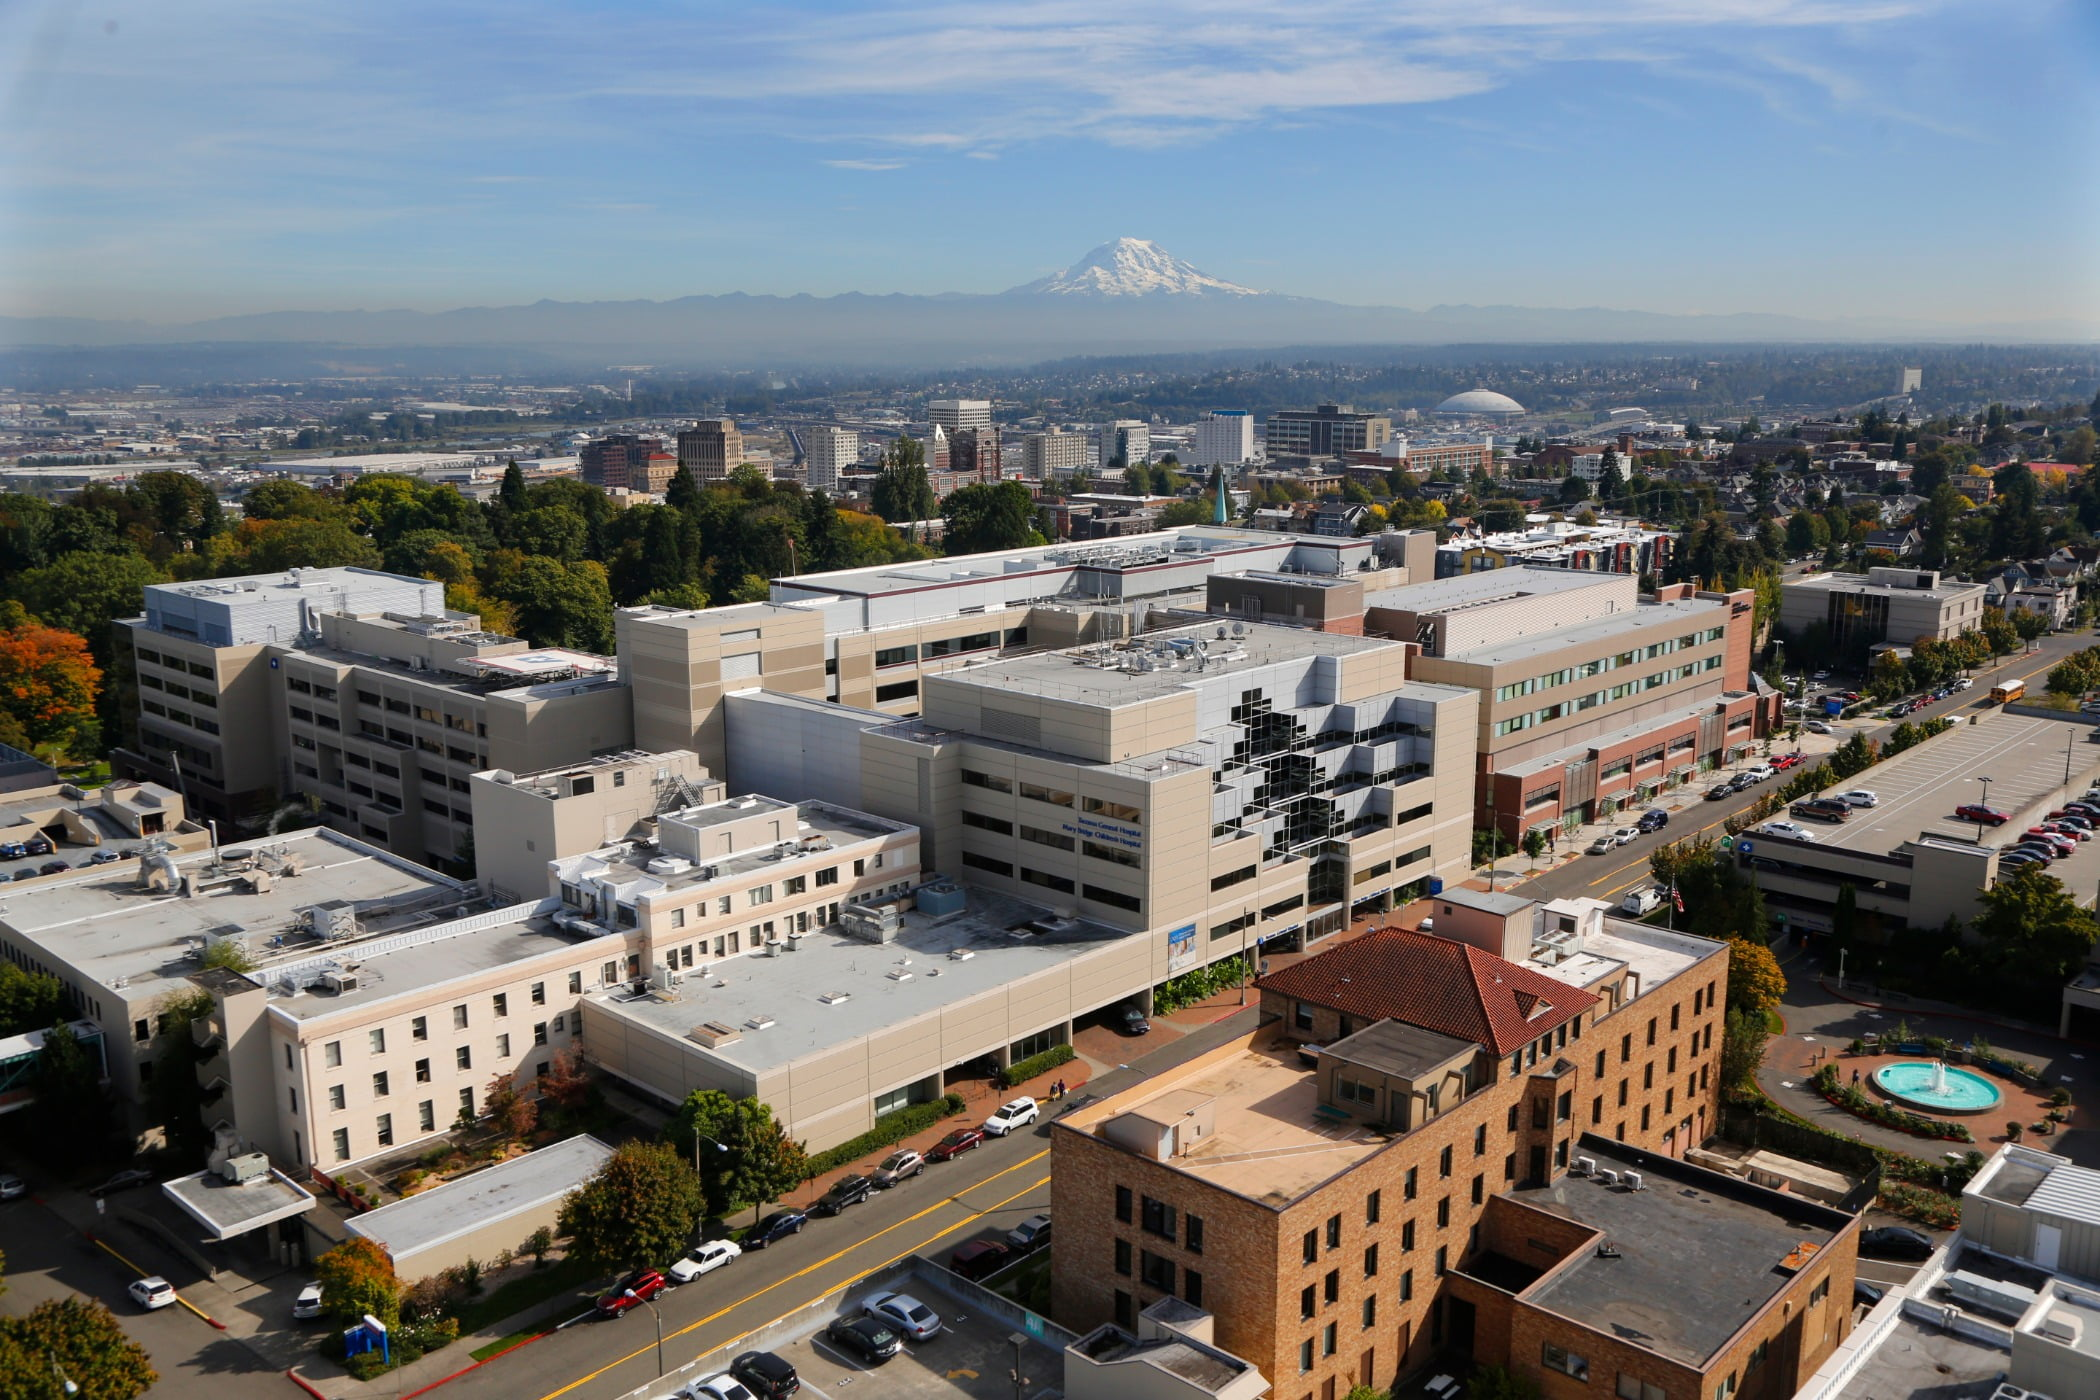 Multicare Health System based in Washington state has implemented video surveillance management upgrades to increase situational awareness and boost security.